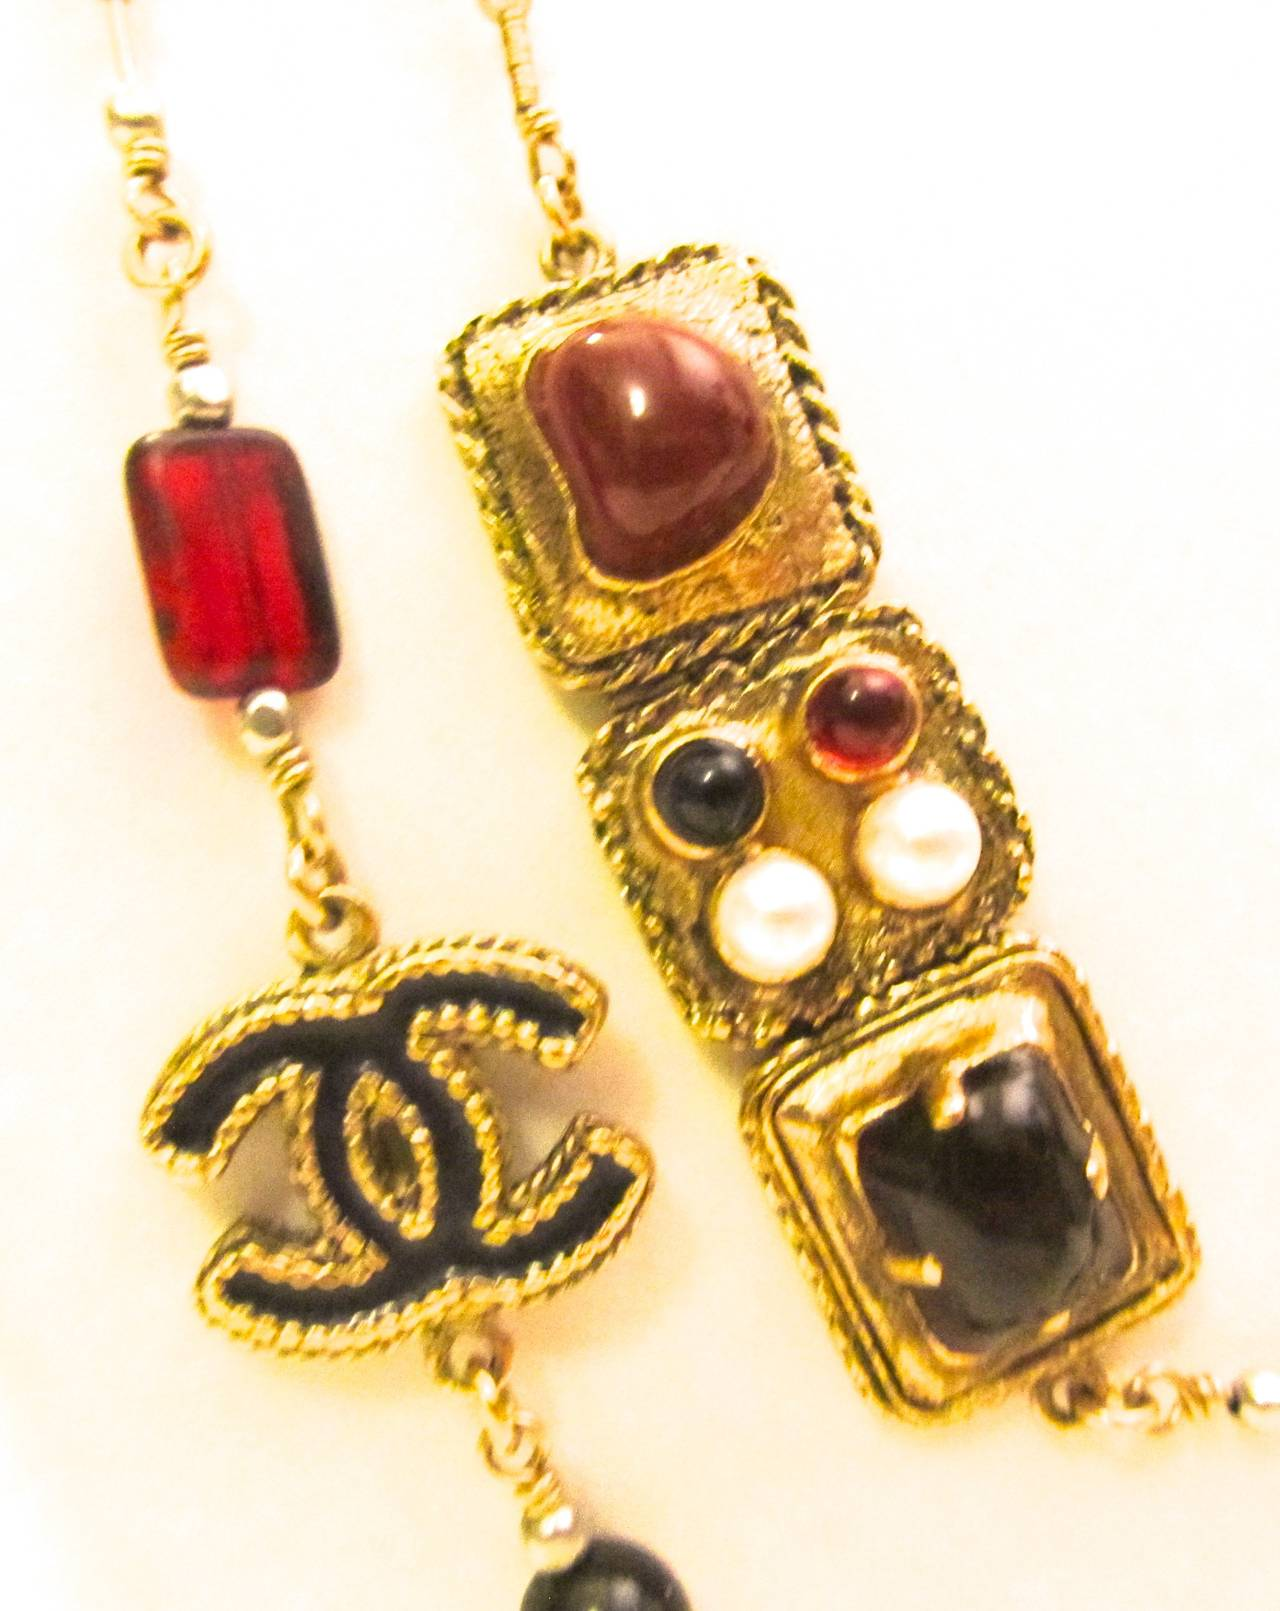 New Chanel Necklace - Gold Tone - Faux Pearls with Ornate Gripoix Stone Inlay For Sale 2